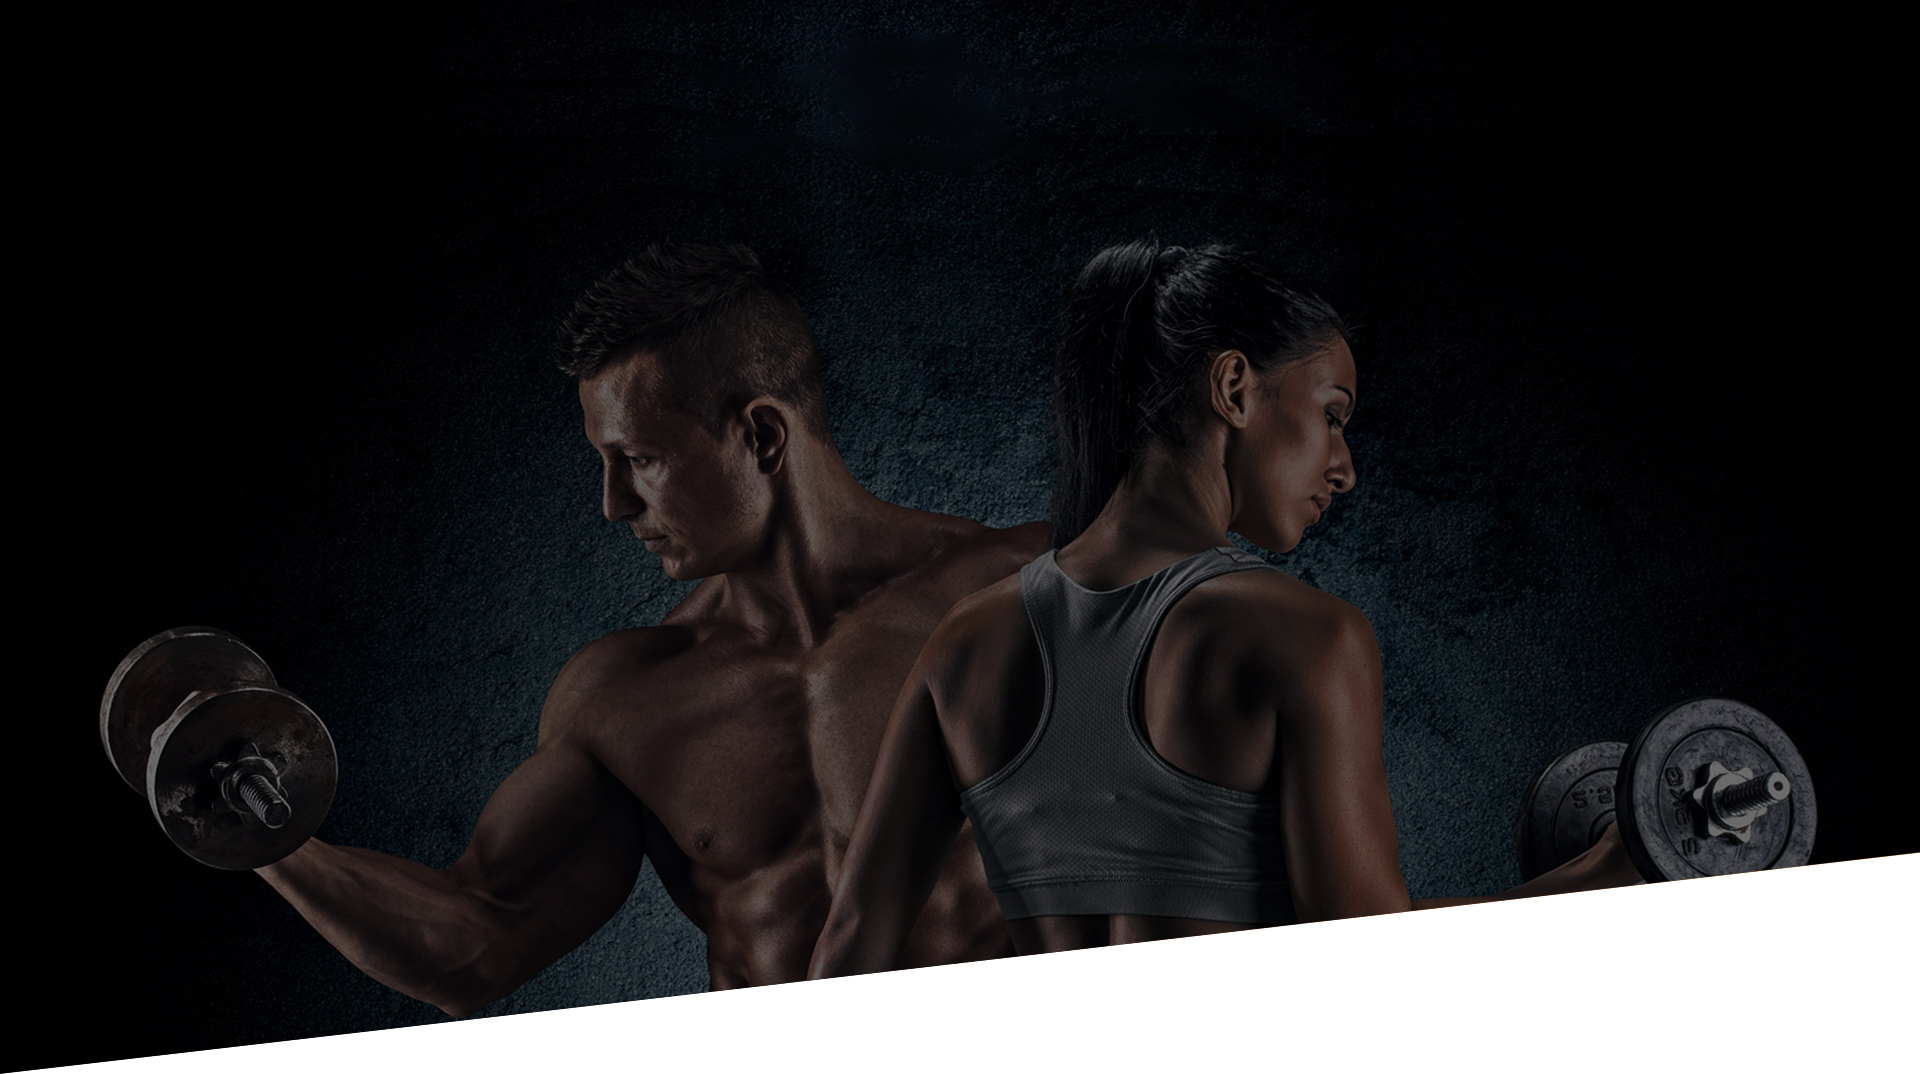 Does the fitness plan for 2021 need to be developed?